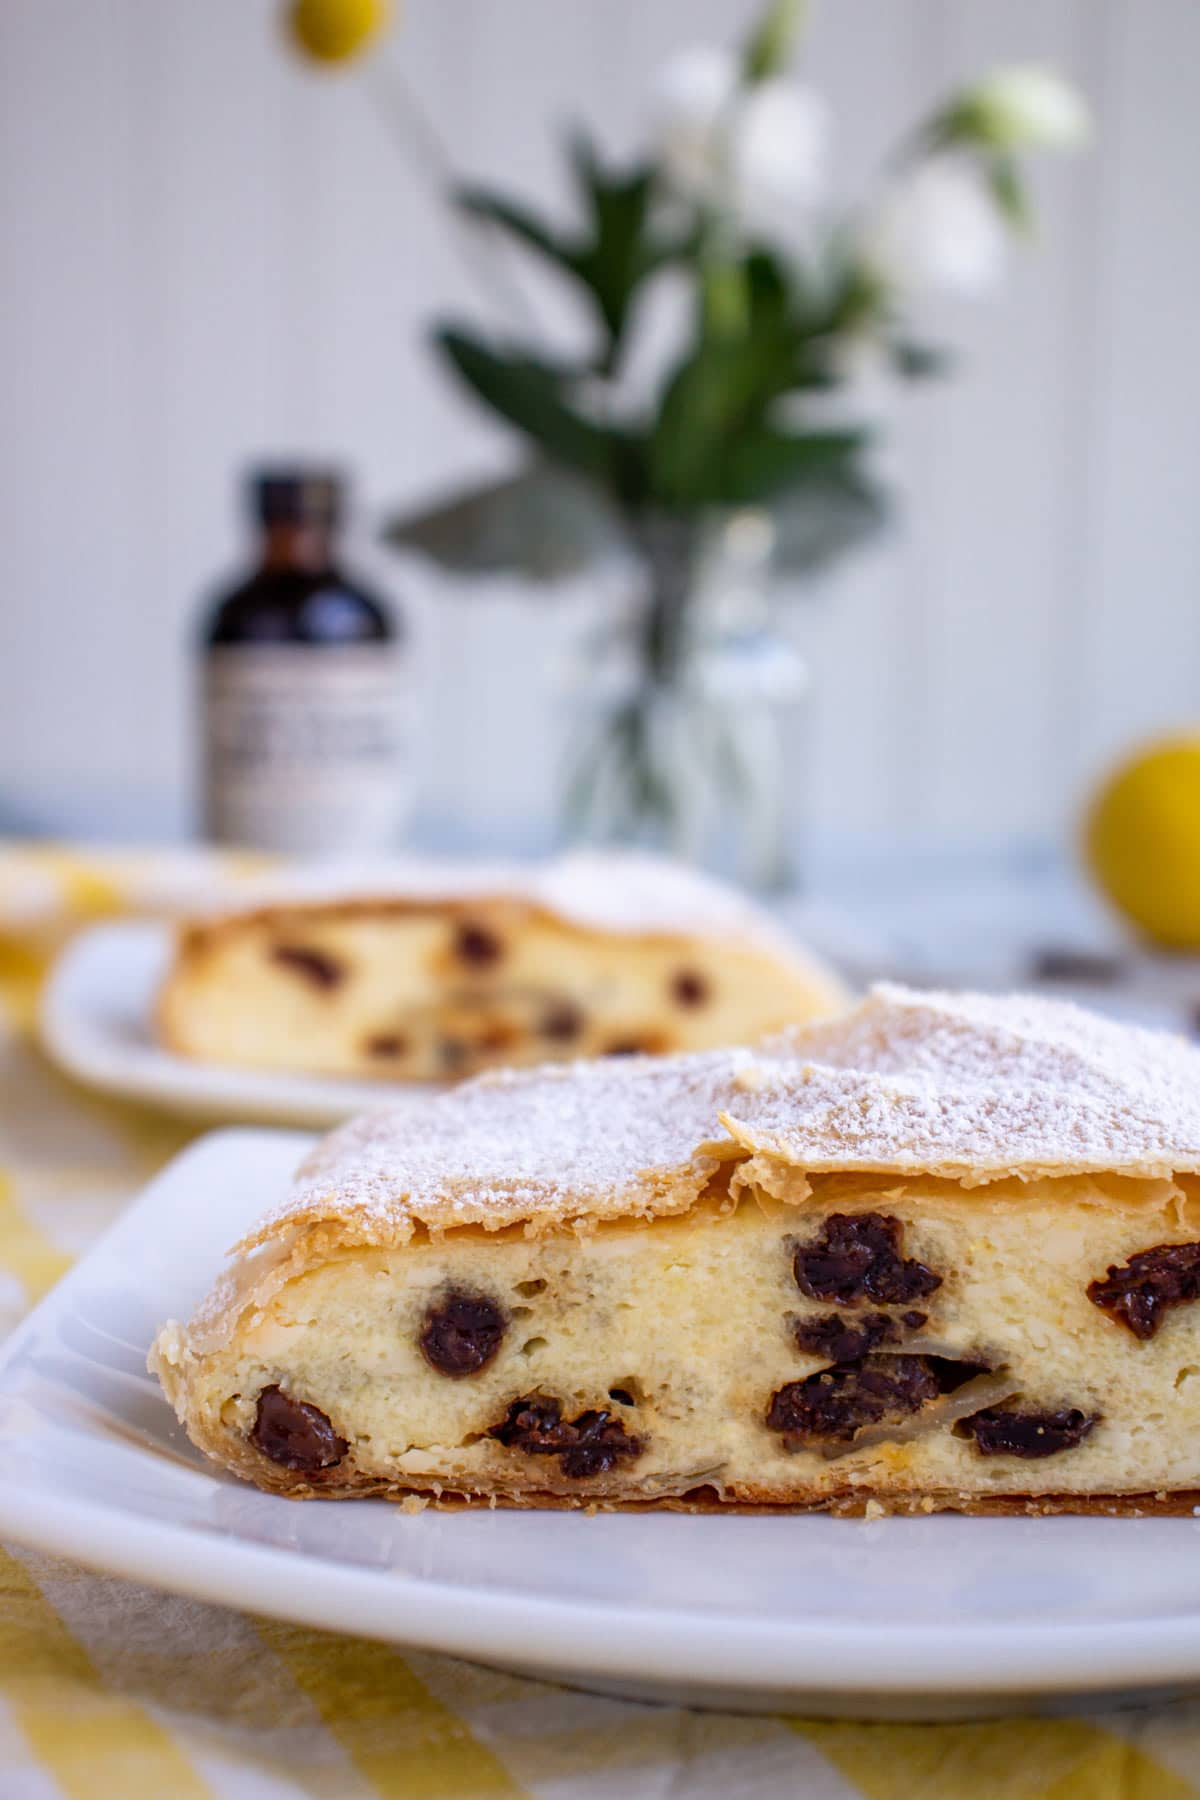 Closeup of a slice of cheese strudel with raisins with flowers in the background.